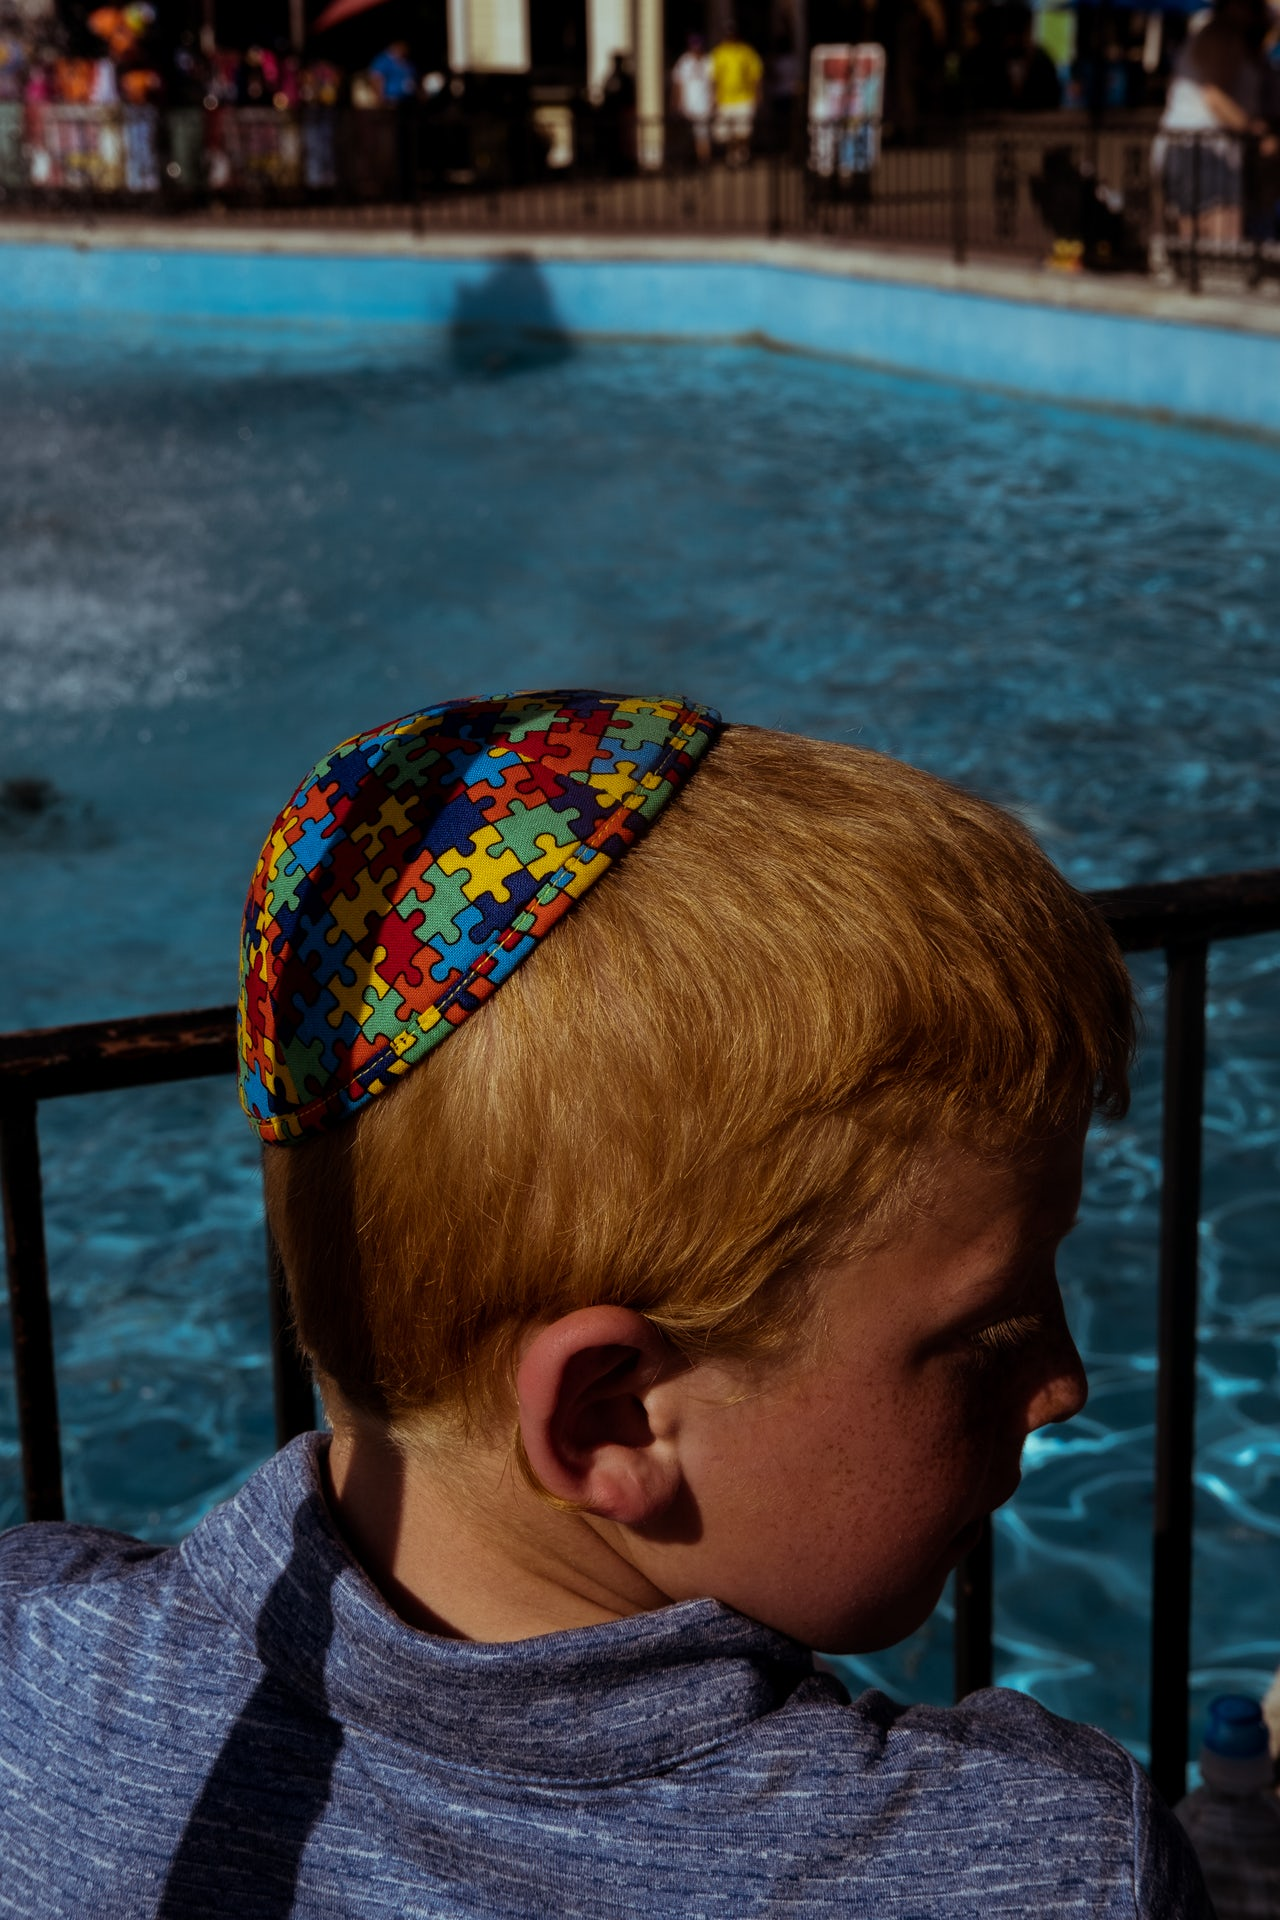 A young boy stands beside the Main Street Fountain, located near the entrance of the park, wearing a kippah bearing the multicolored jigsaw pattern that represents autism awareness.